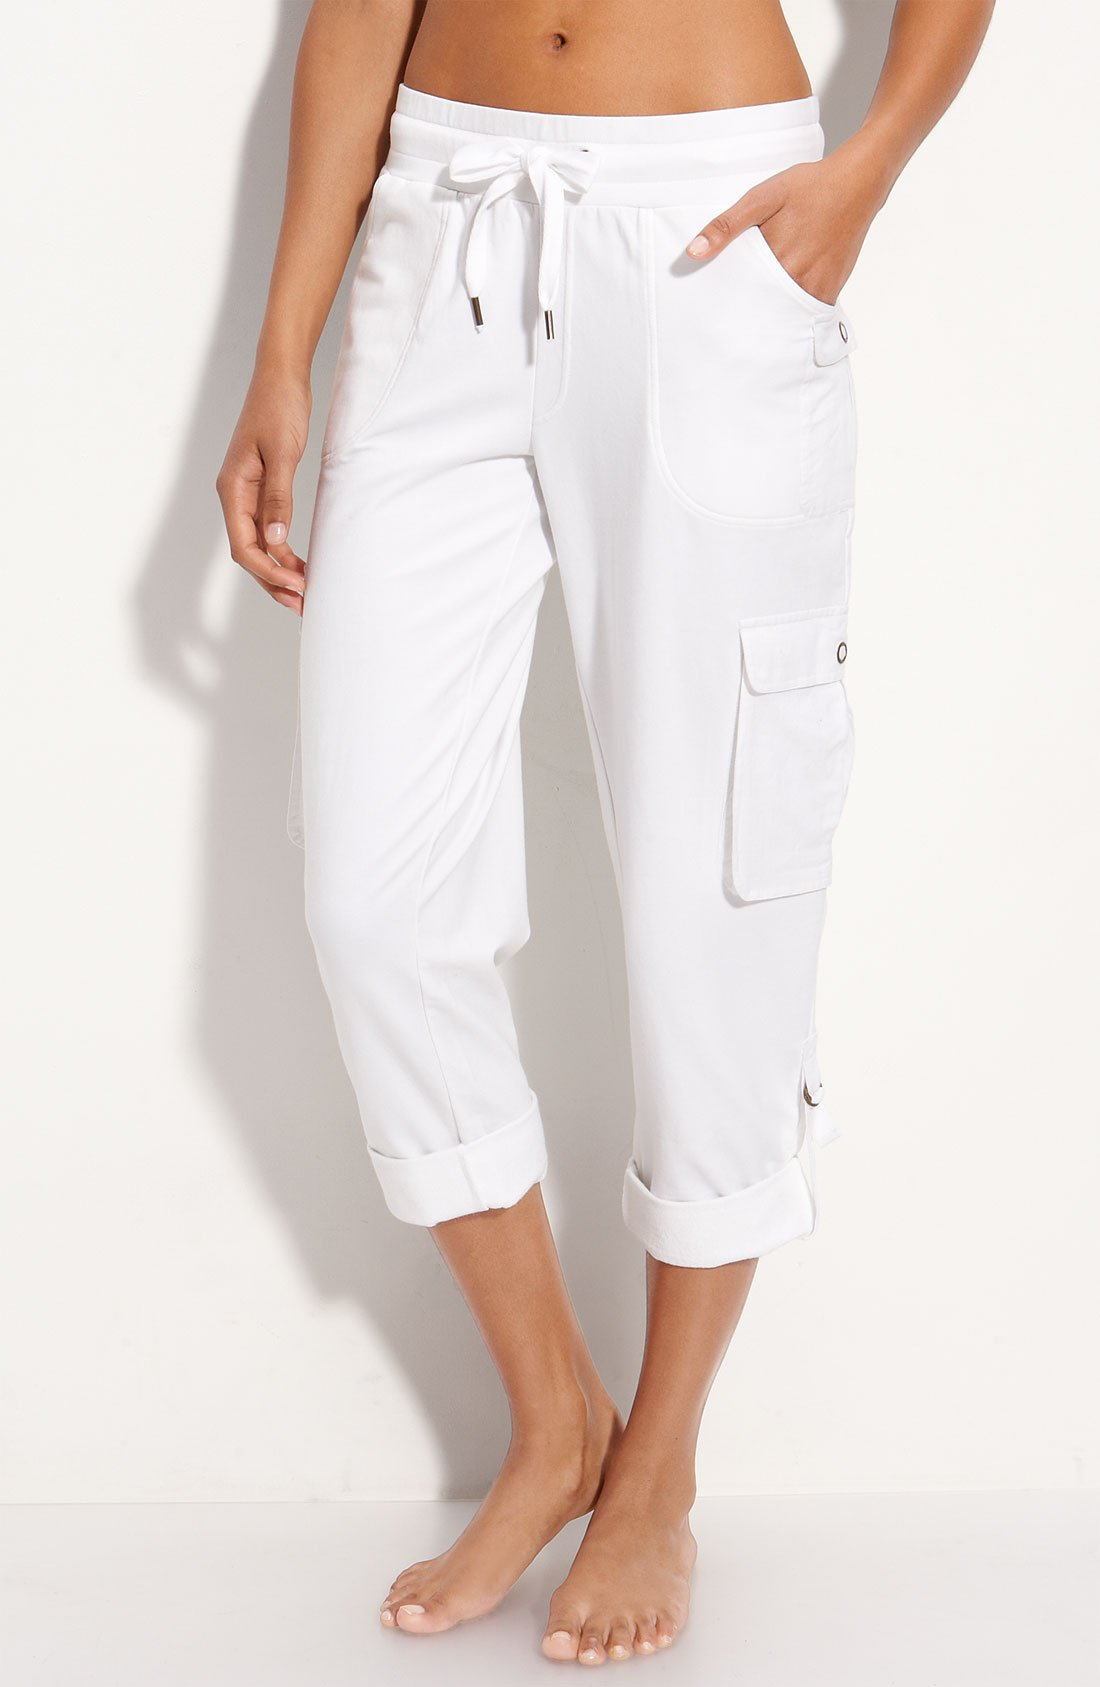 Womens White Capri Pants